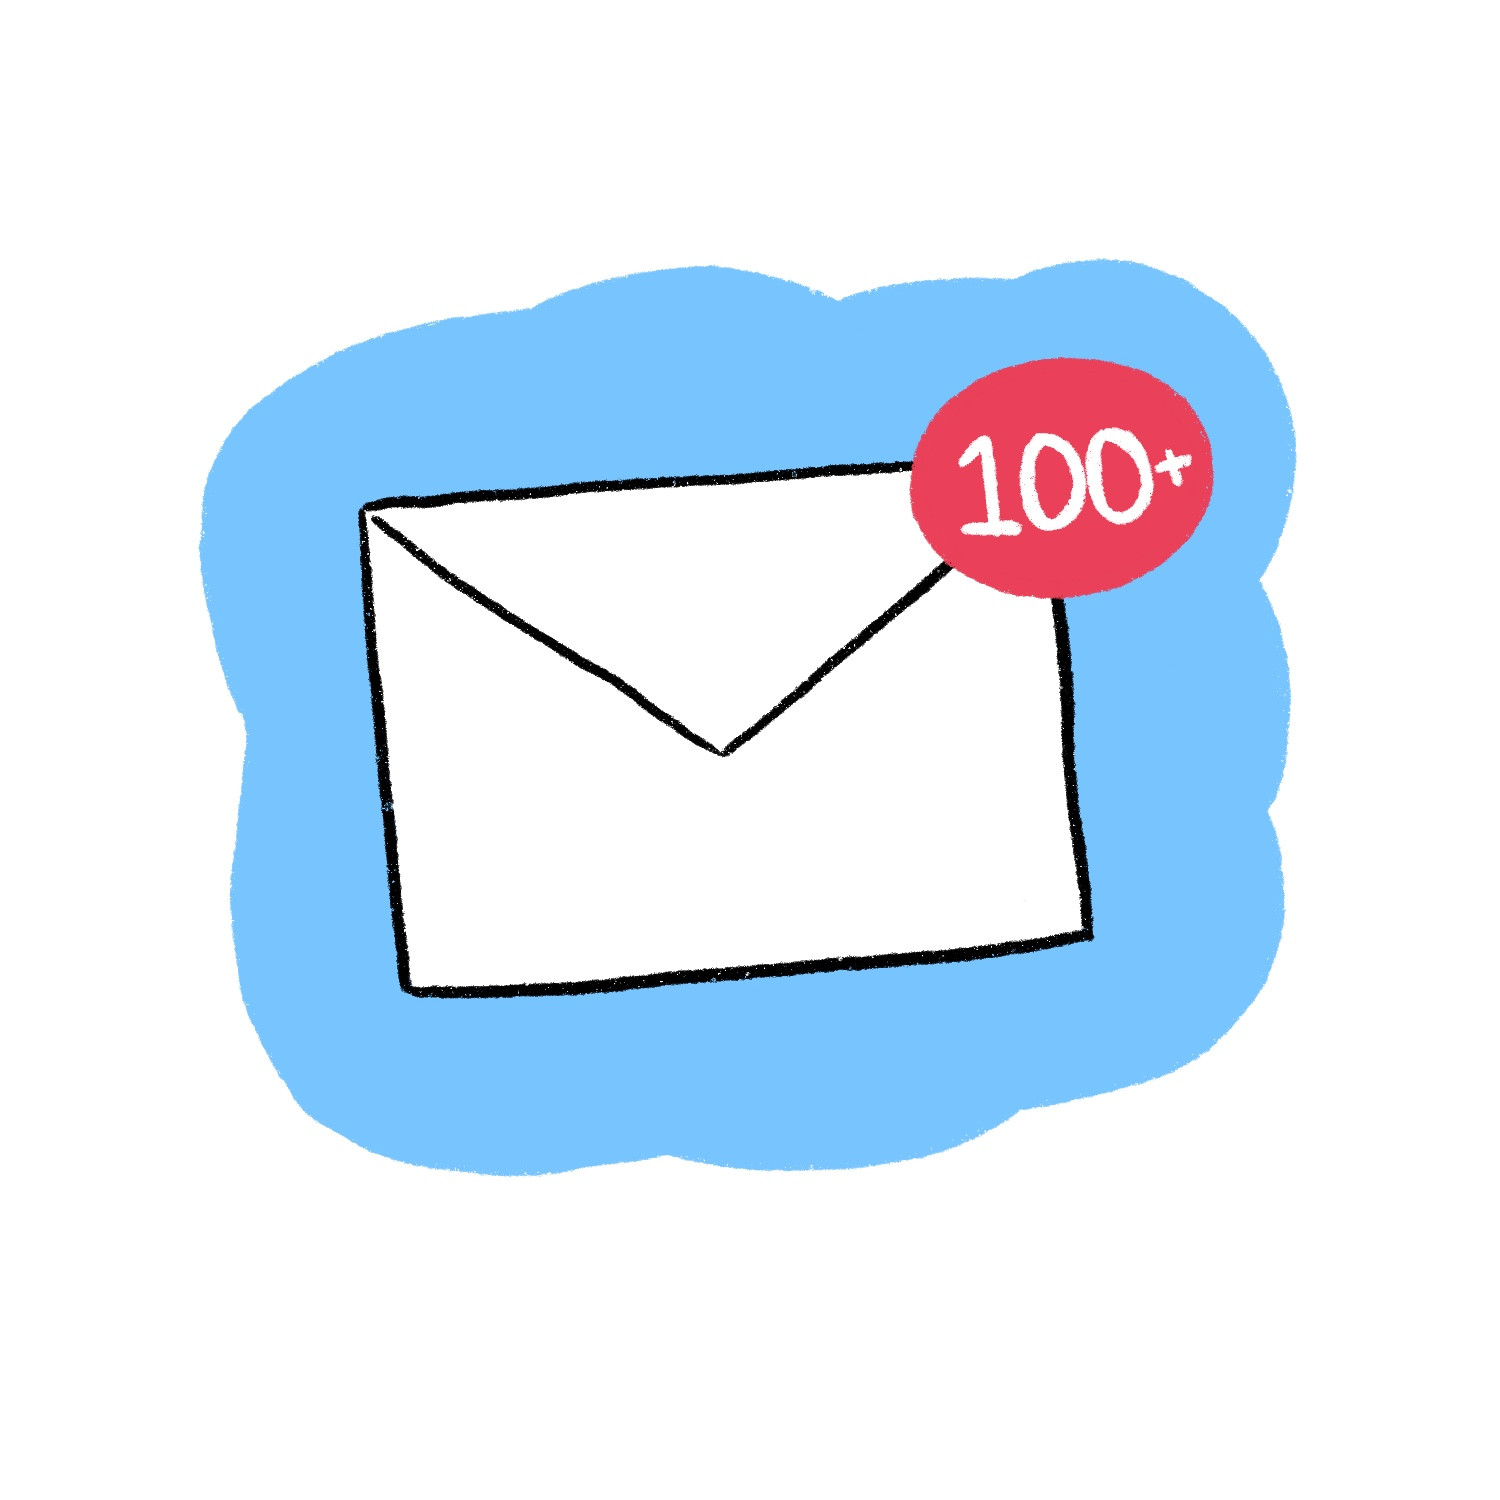 An email letter icon with a 100+ reply indicator